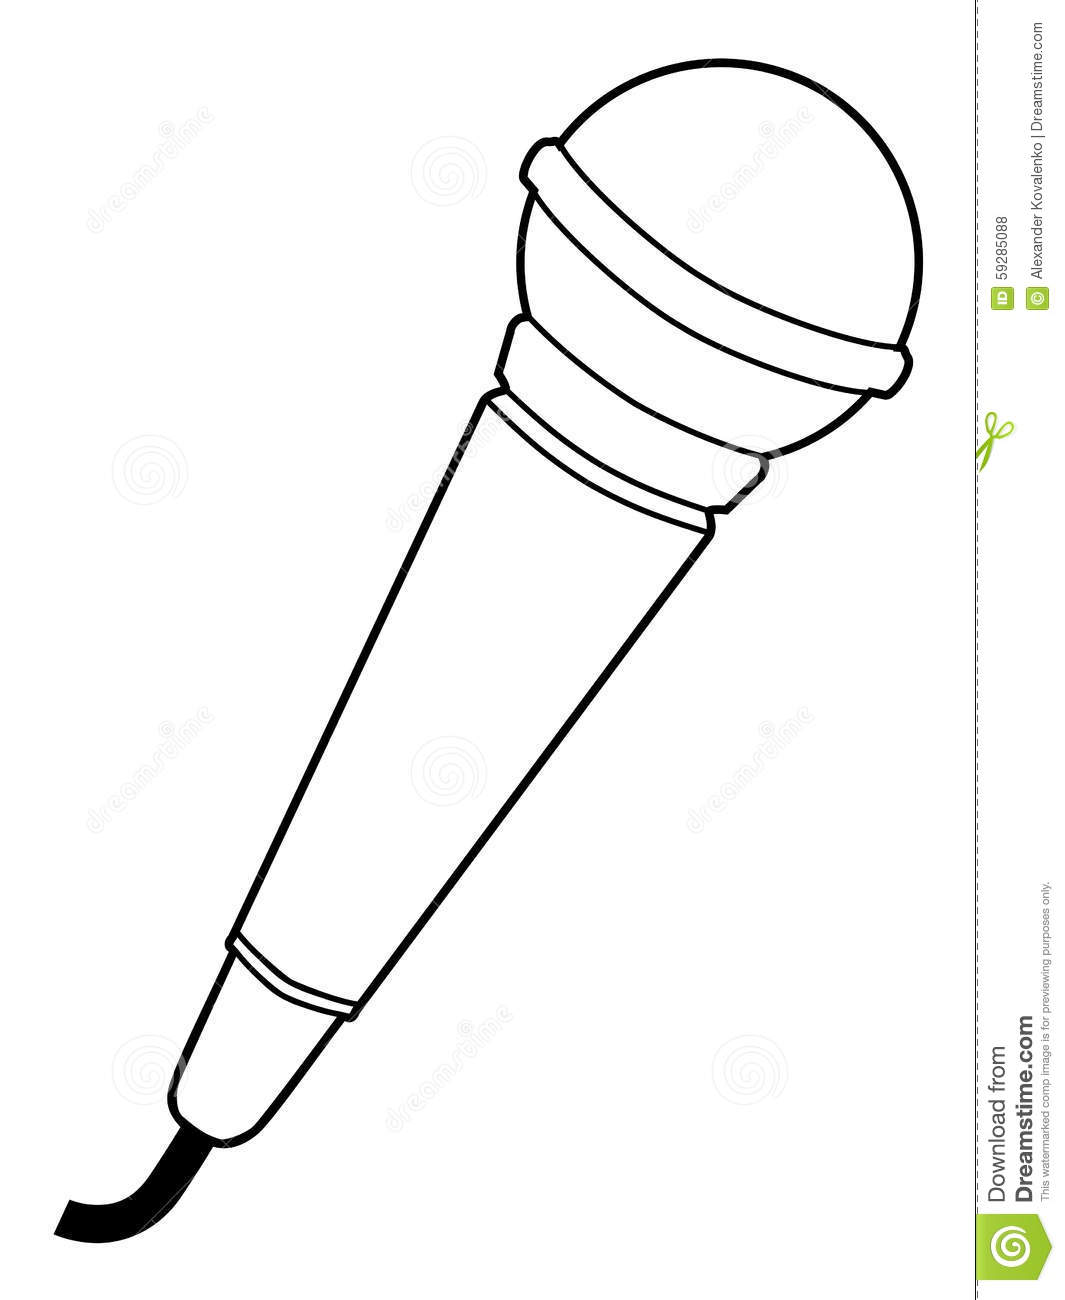 Microphone Audio Equipment Stock Illustration